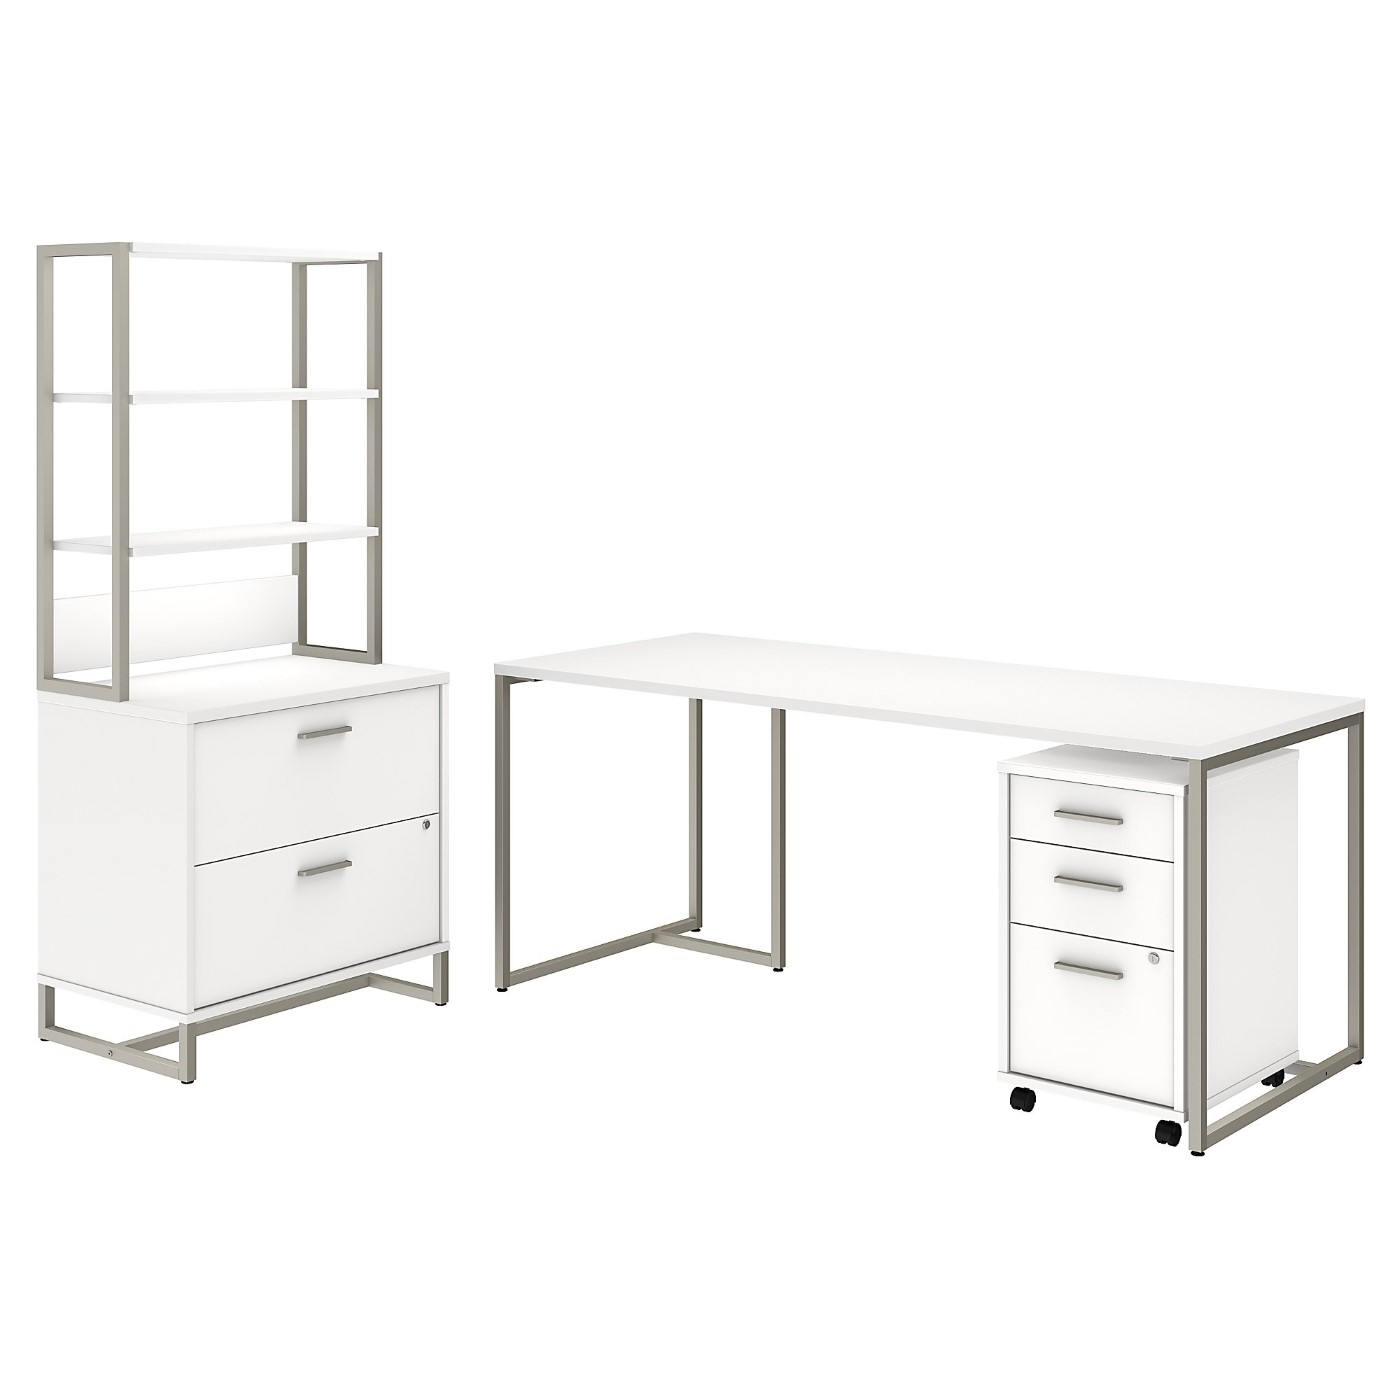 OFFICE BY KATHY IRELAND� METHOD 72W TABLE DESK WITH FILE CABINETS AND HUTCH. FREE SHIPPING